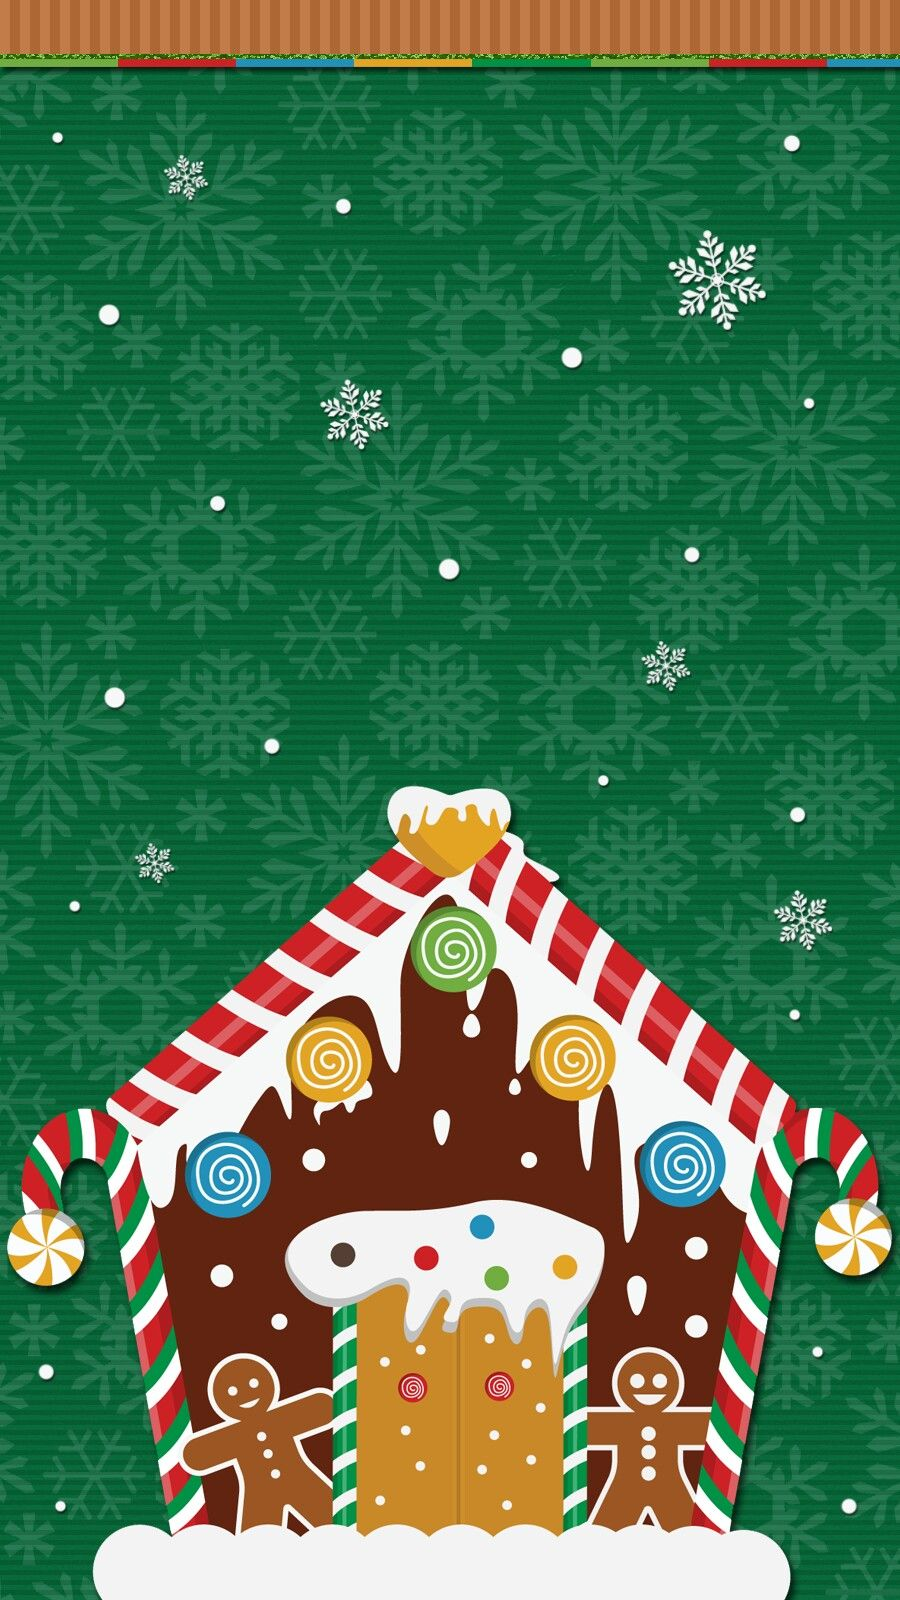 Cute Gingerbread Wallpaper Iphone Android Christmas Christmas Phone Wallpaper Christmas Screen Savers Holiday Wallpaper